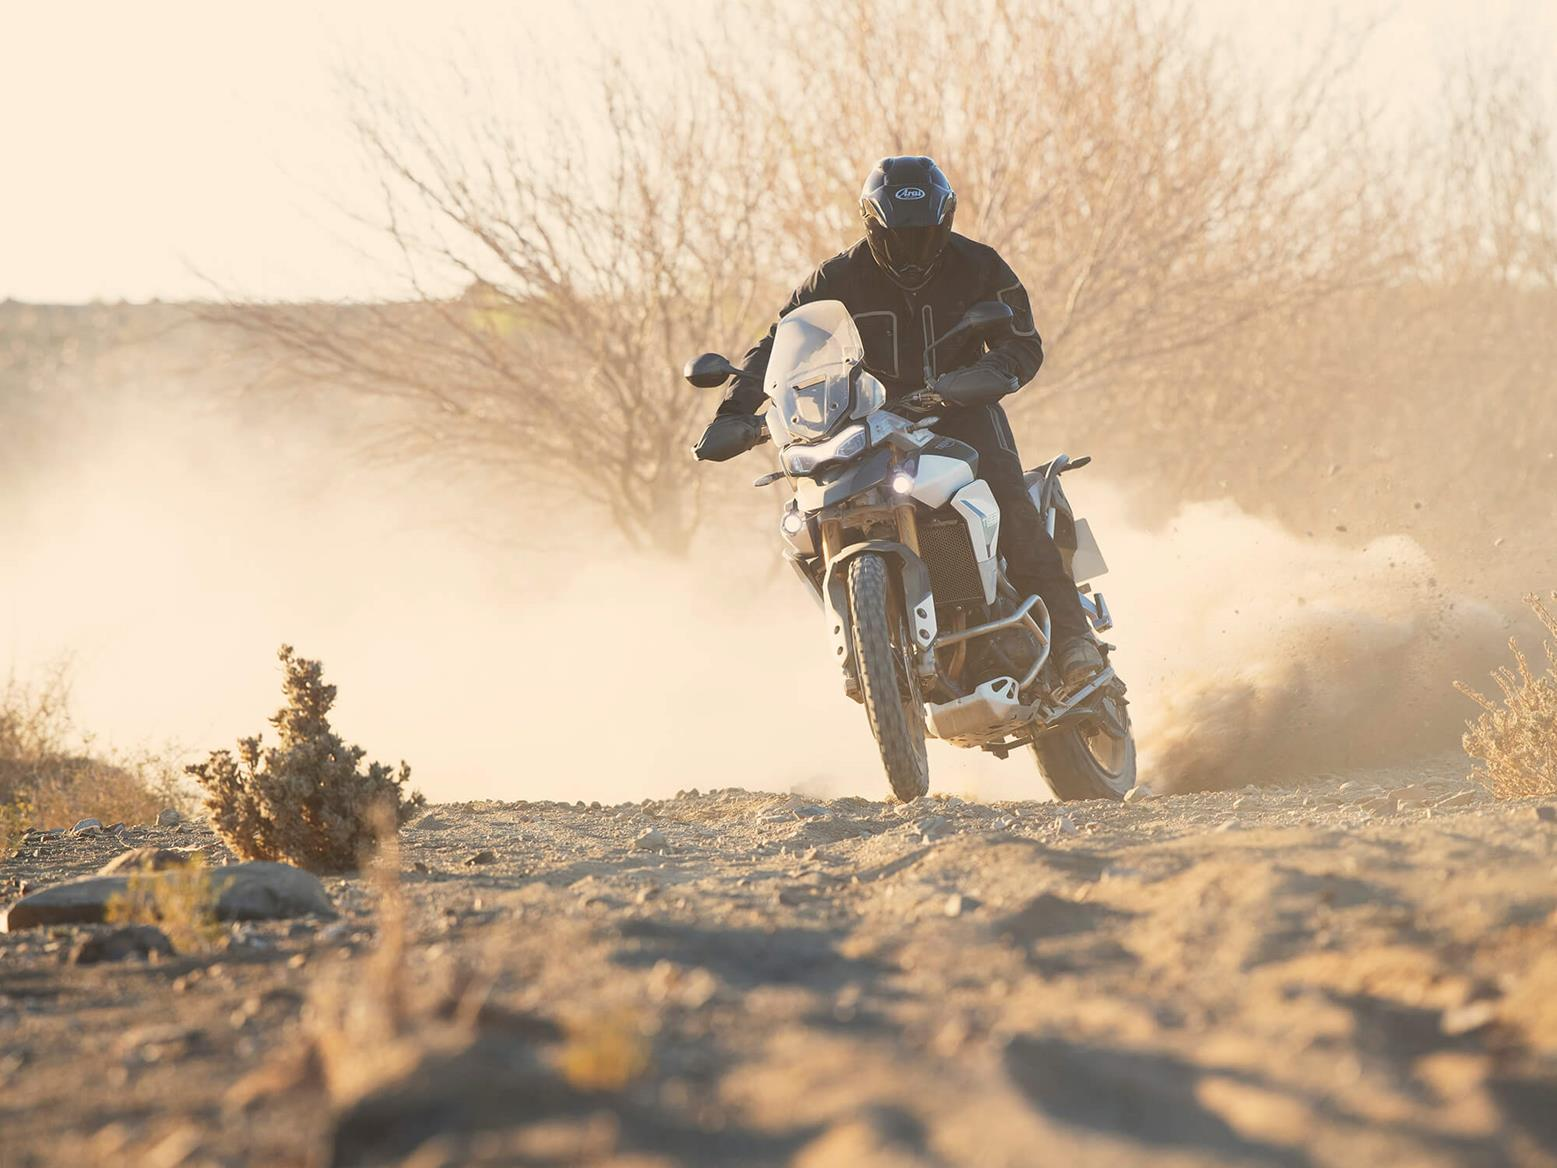 Triumph Tiger 900 Rally Pro sideways on desert